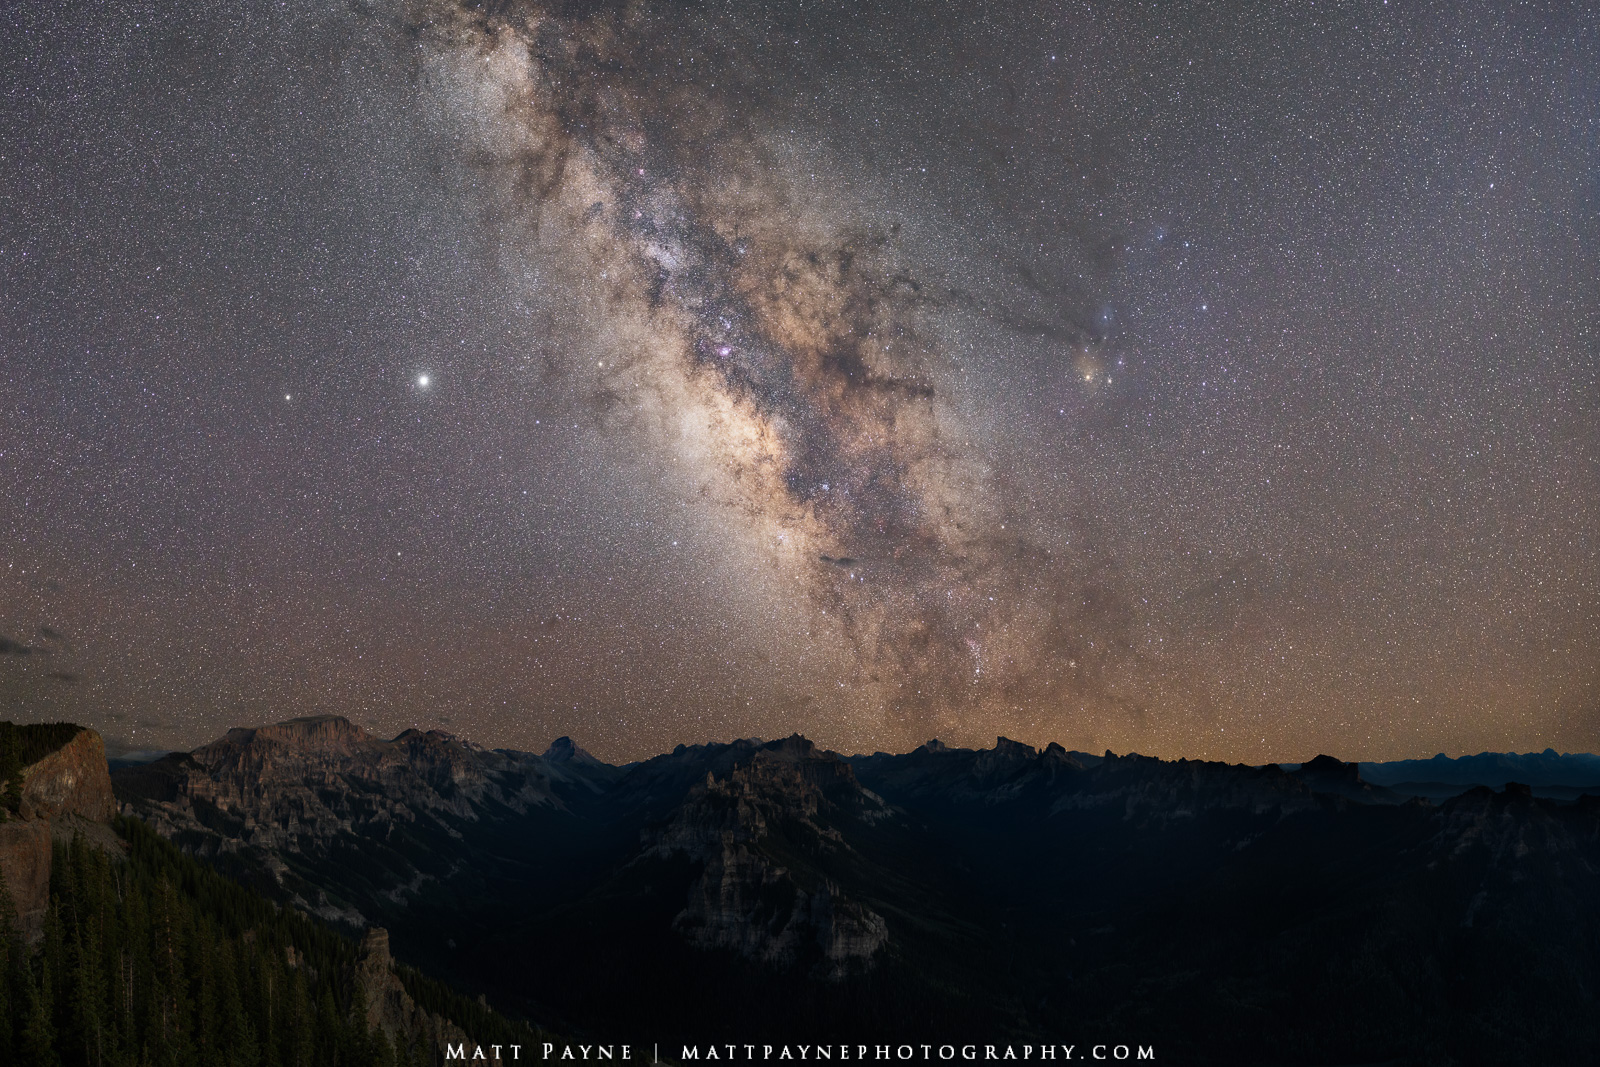 Mount Sneffels, Milky Way, July, Cimarron Mountains, San Juan Mountains, Uncompahgre Peak, 14er, Precipice Peak, night, nightscape, PhotoPills, backpacking, photo